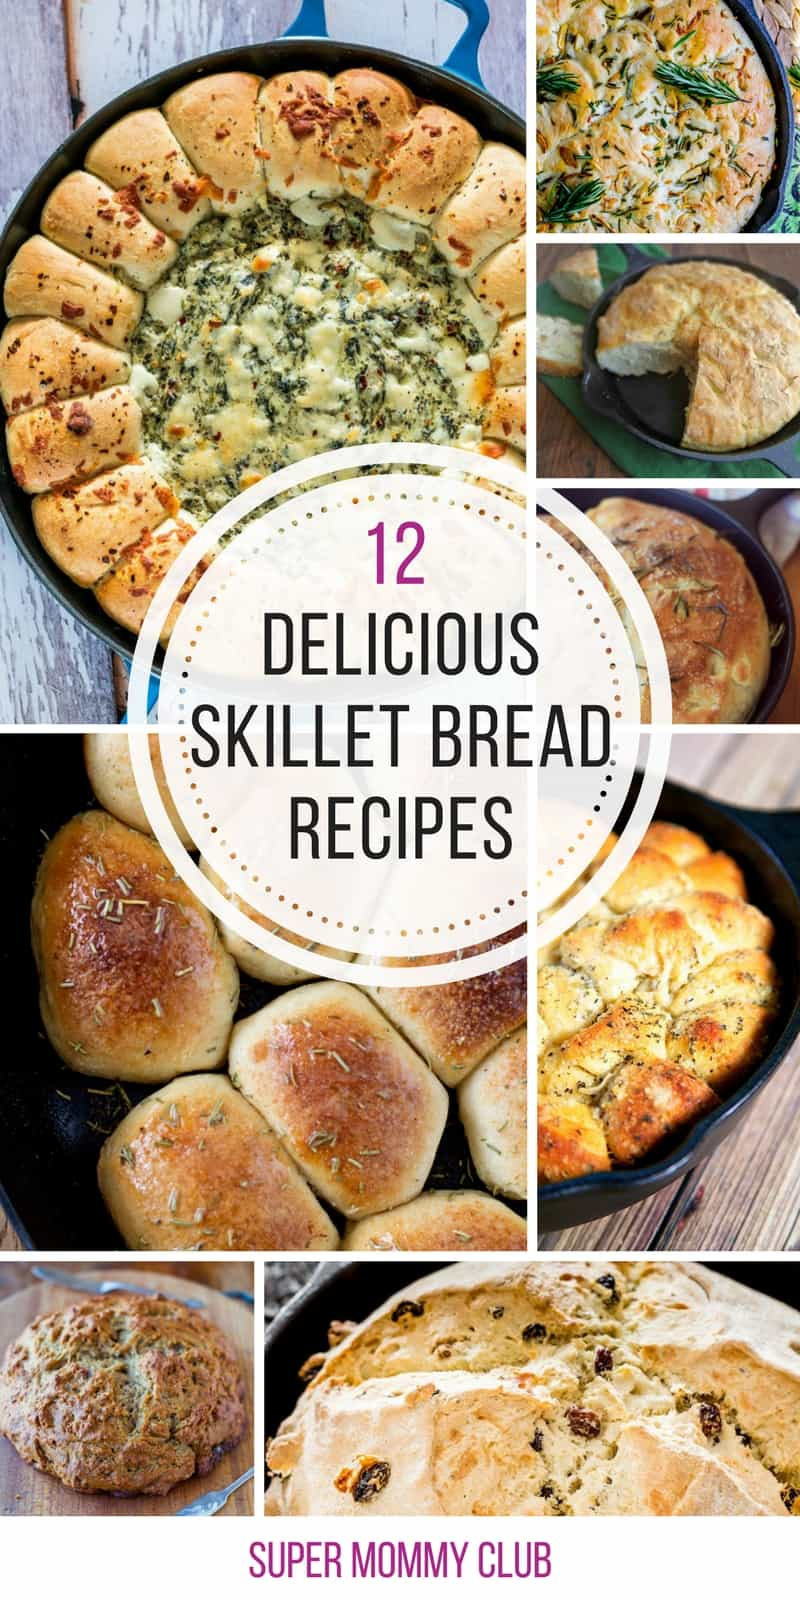 Oh these cast iron breads look AMAZING! Can't wait to try some in my skillet!